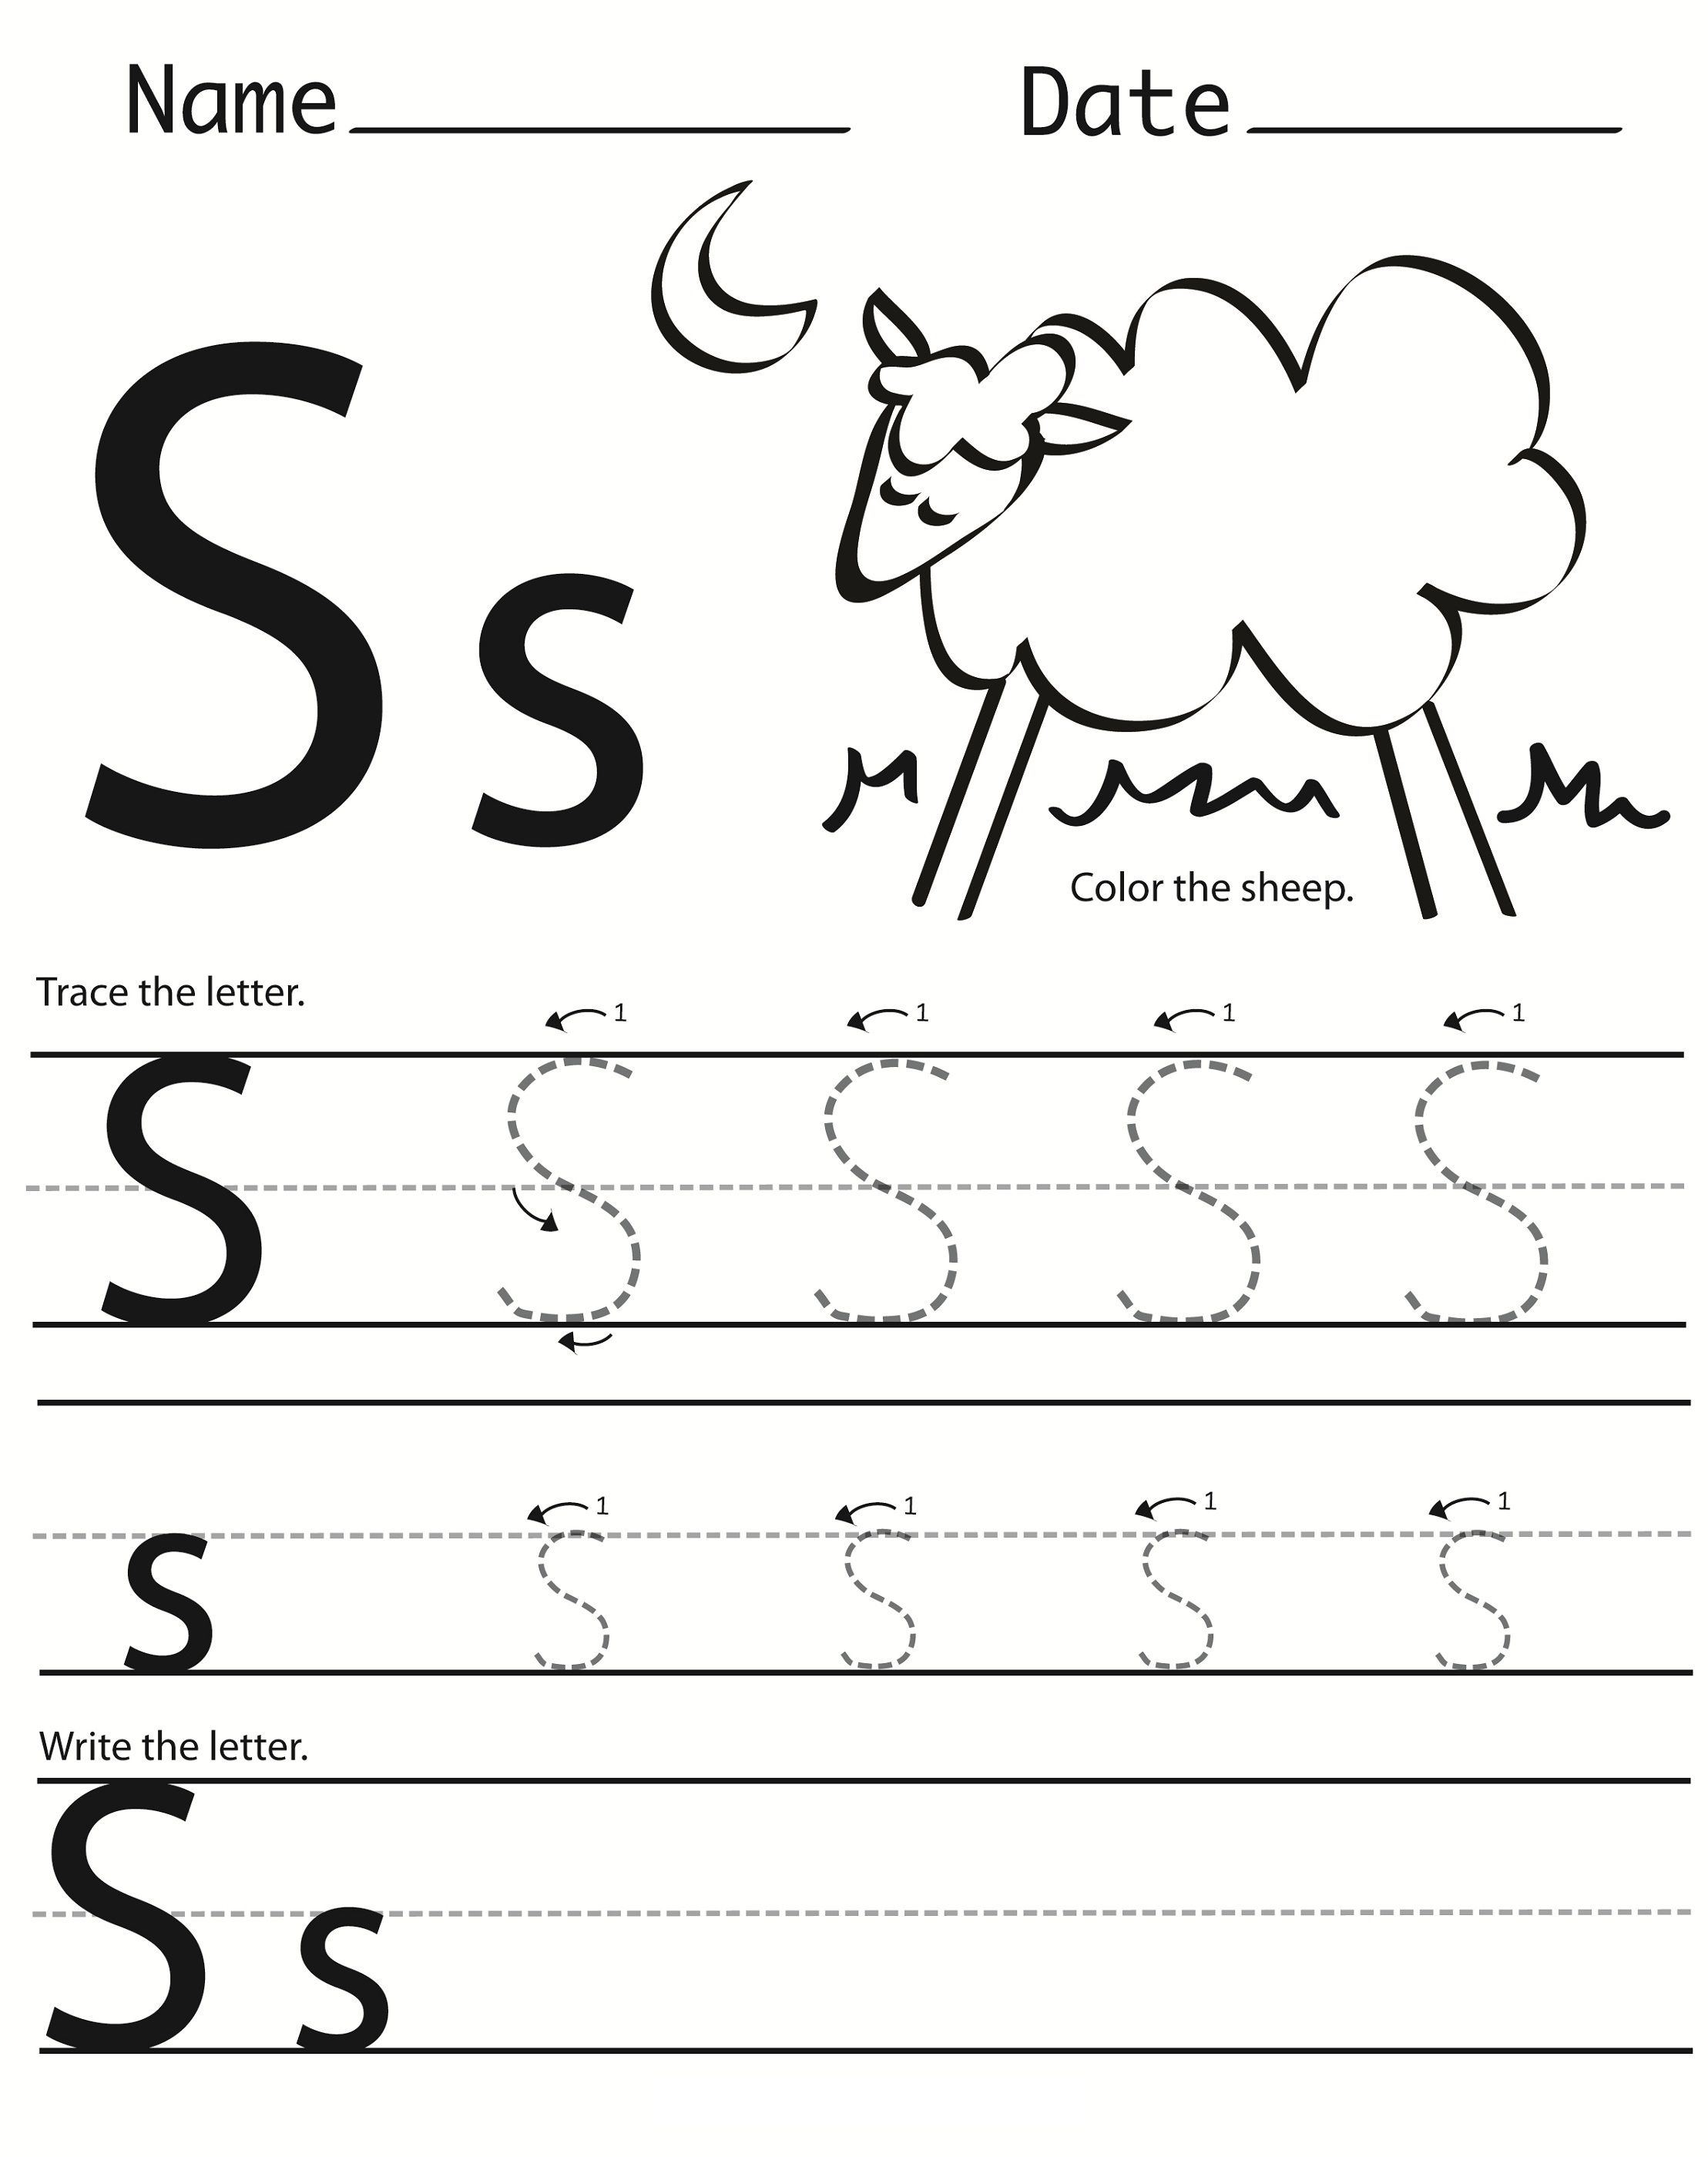 19 Cool Letter S Worksheets